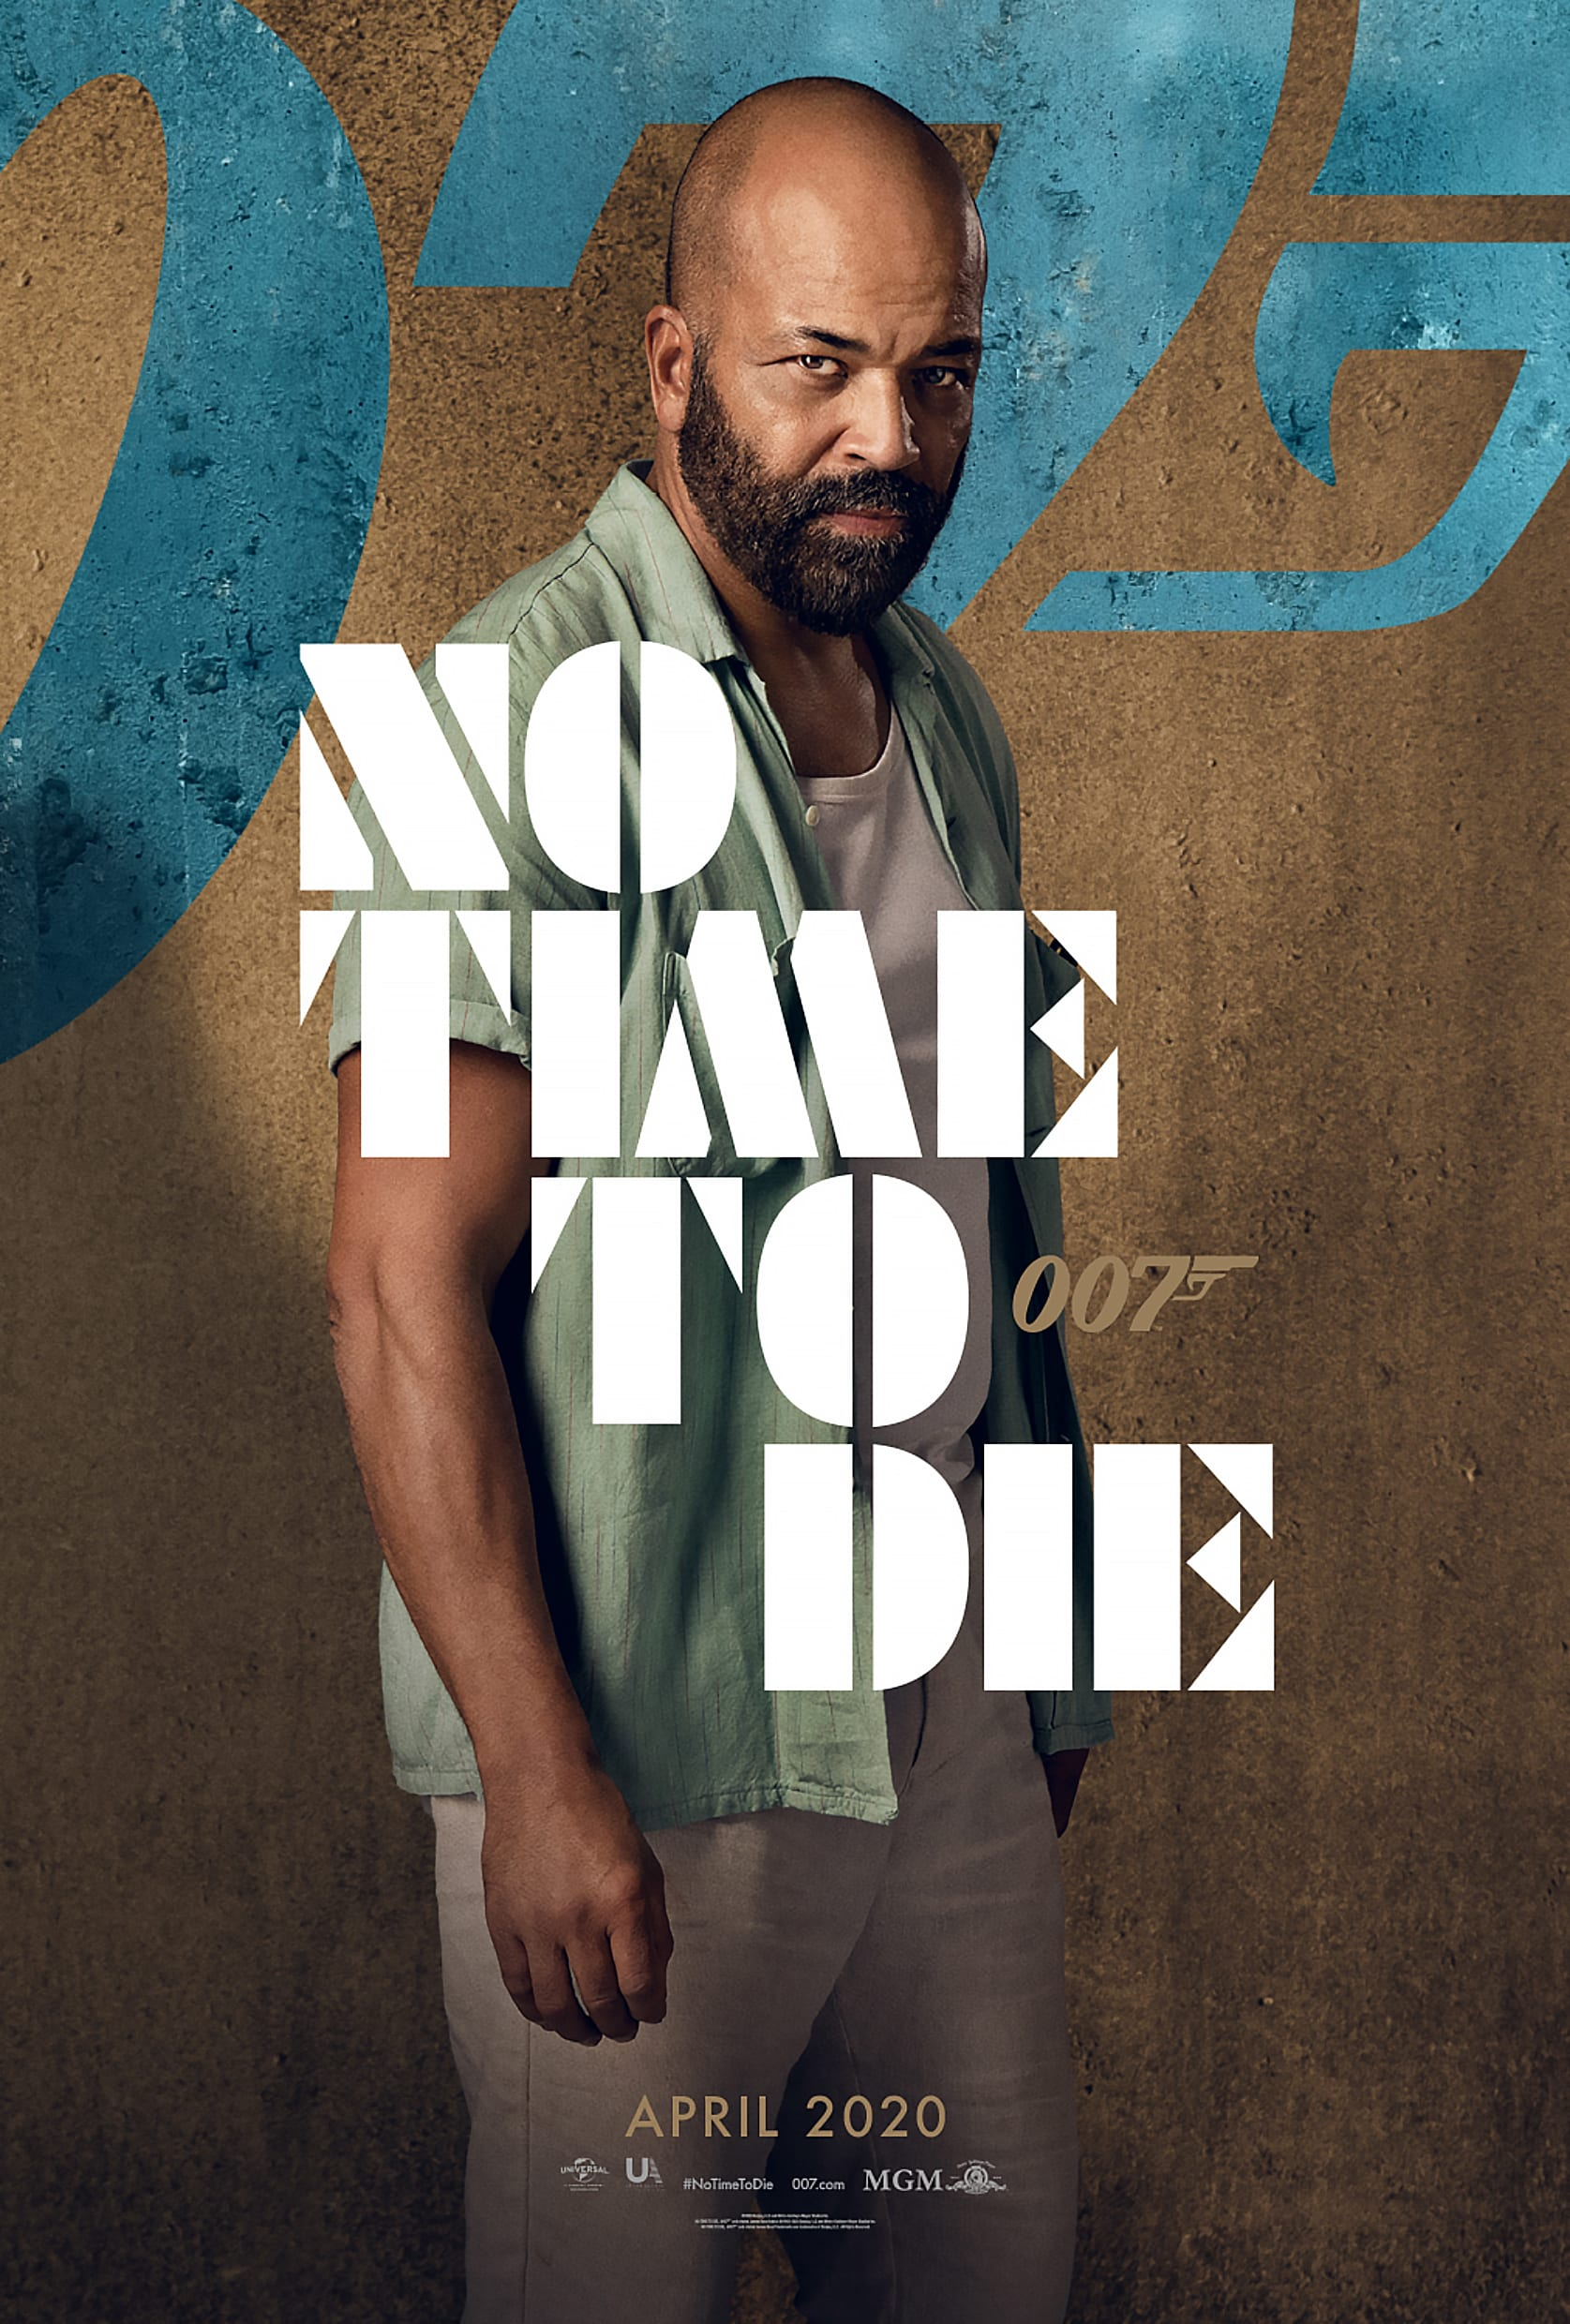 007 No Time To Die Bond 25 Character Posters Jeffrey Wright as Felix Leiter